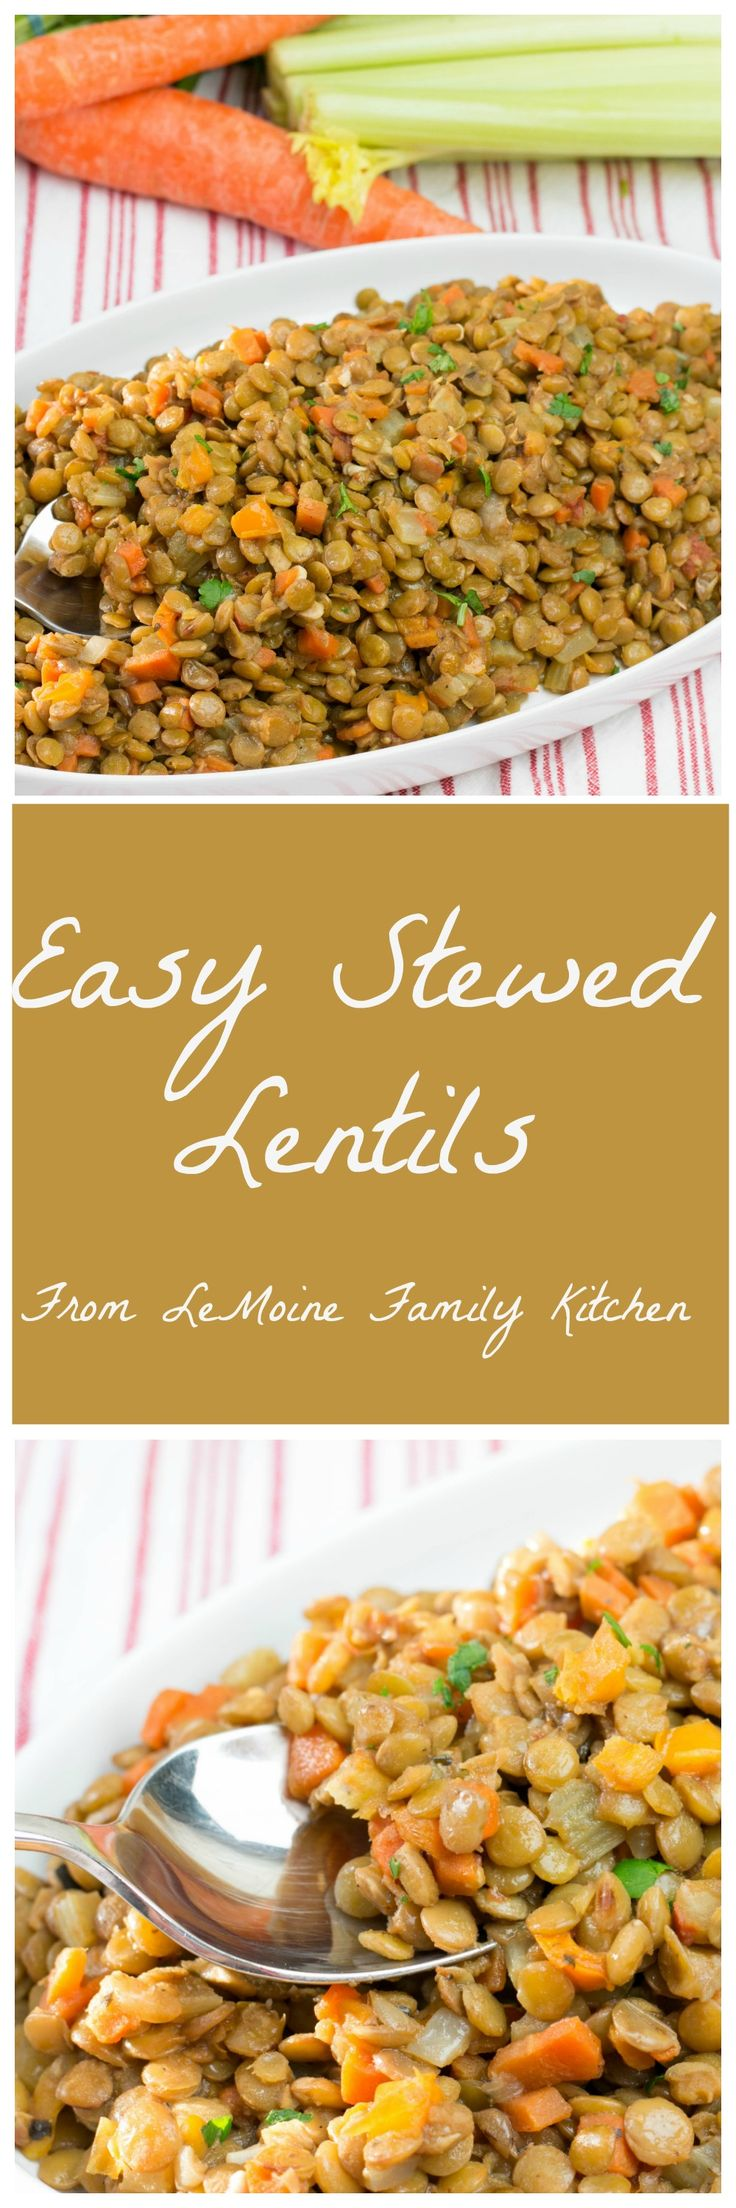 Starting the New Year off with plenty of healthy recipes. This Easy Stewed Lentils dish is so flavorful, filling and the health benefits of lentils is kind of a big deal! You are going to love this recipe!